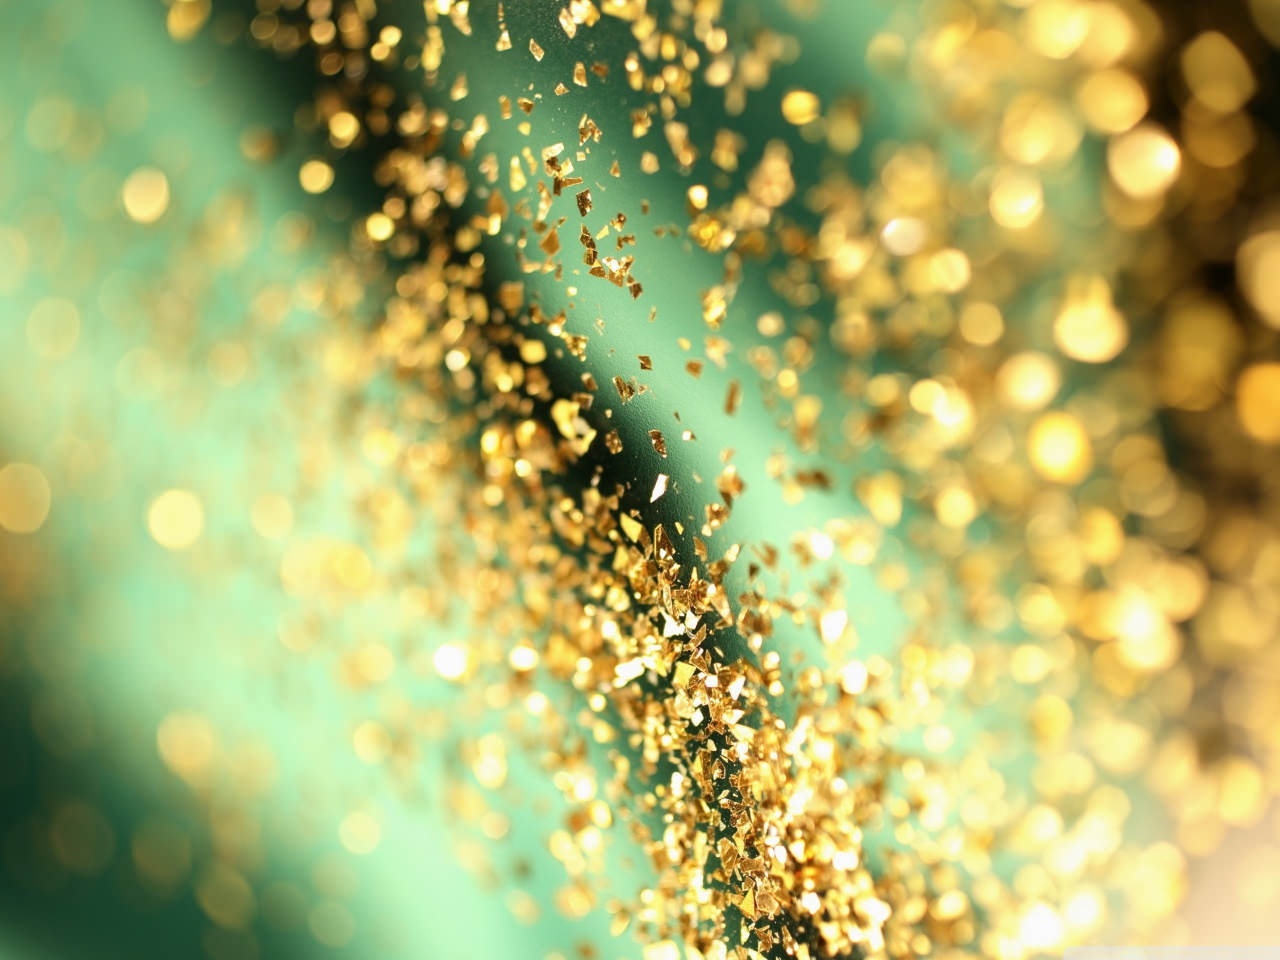 24 glitter wallpapers backgrounds images freecreatives for Wallpaper glitter home